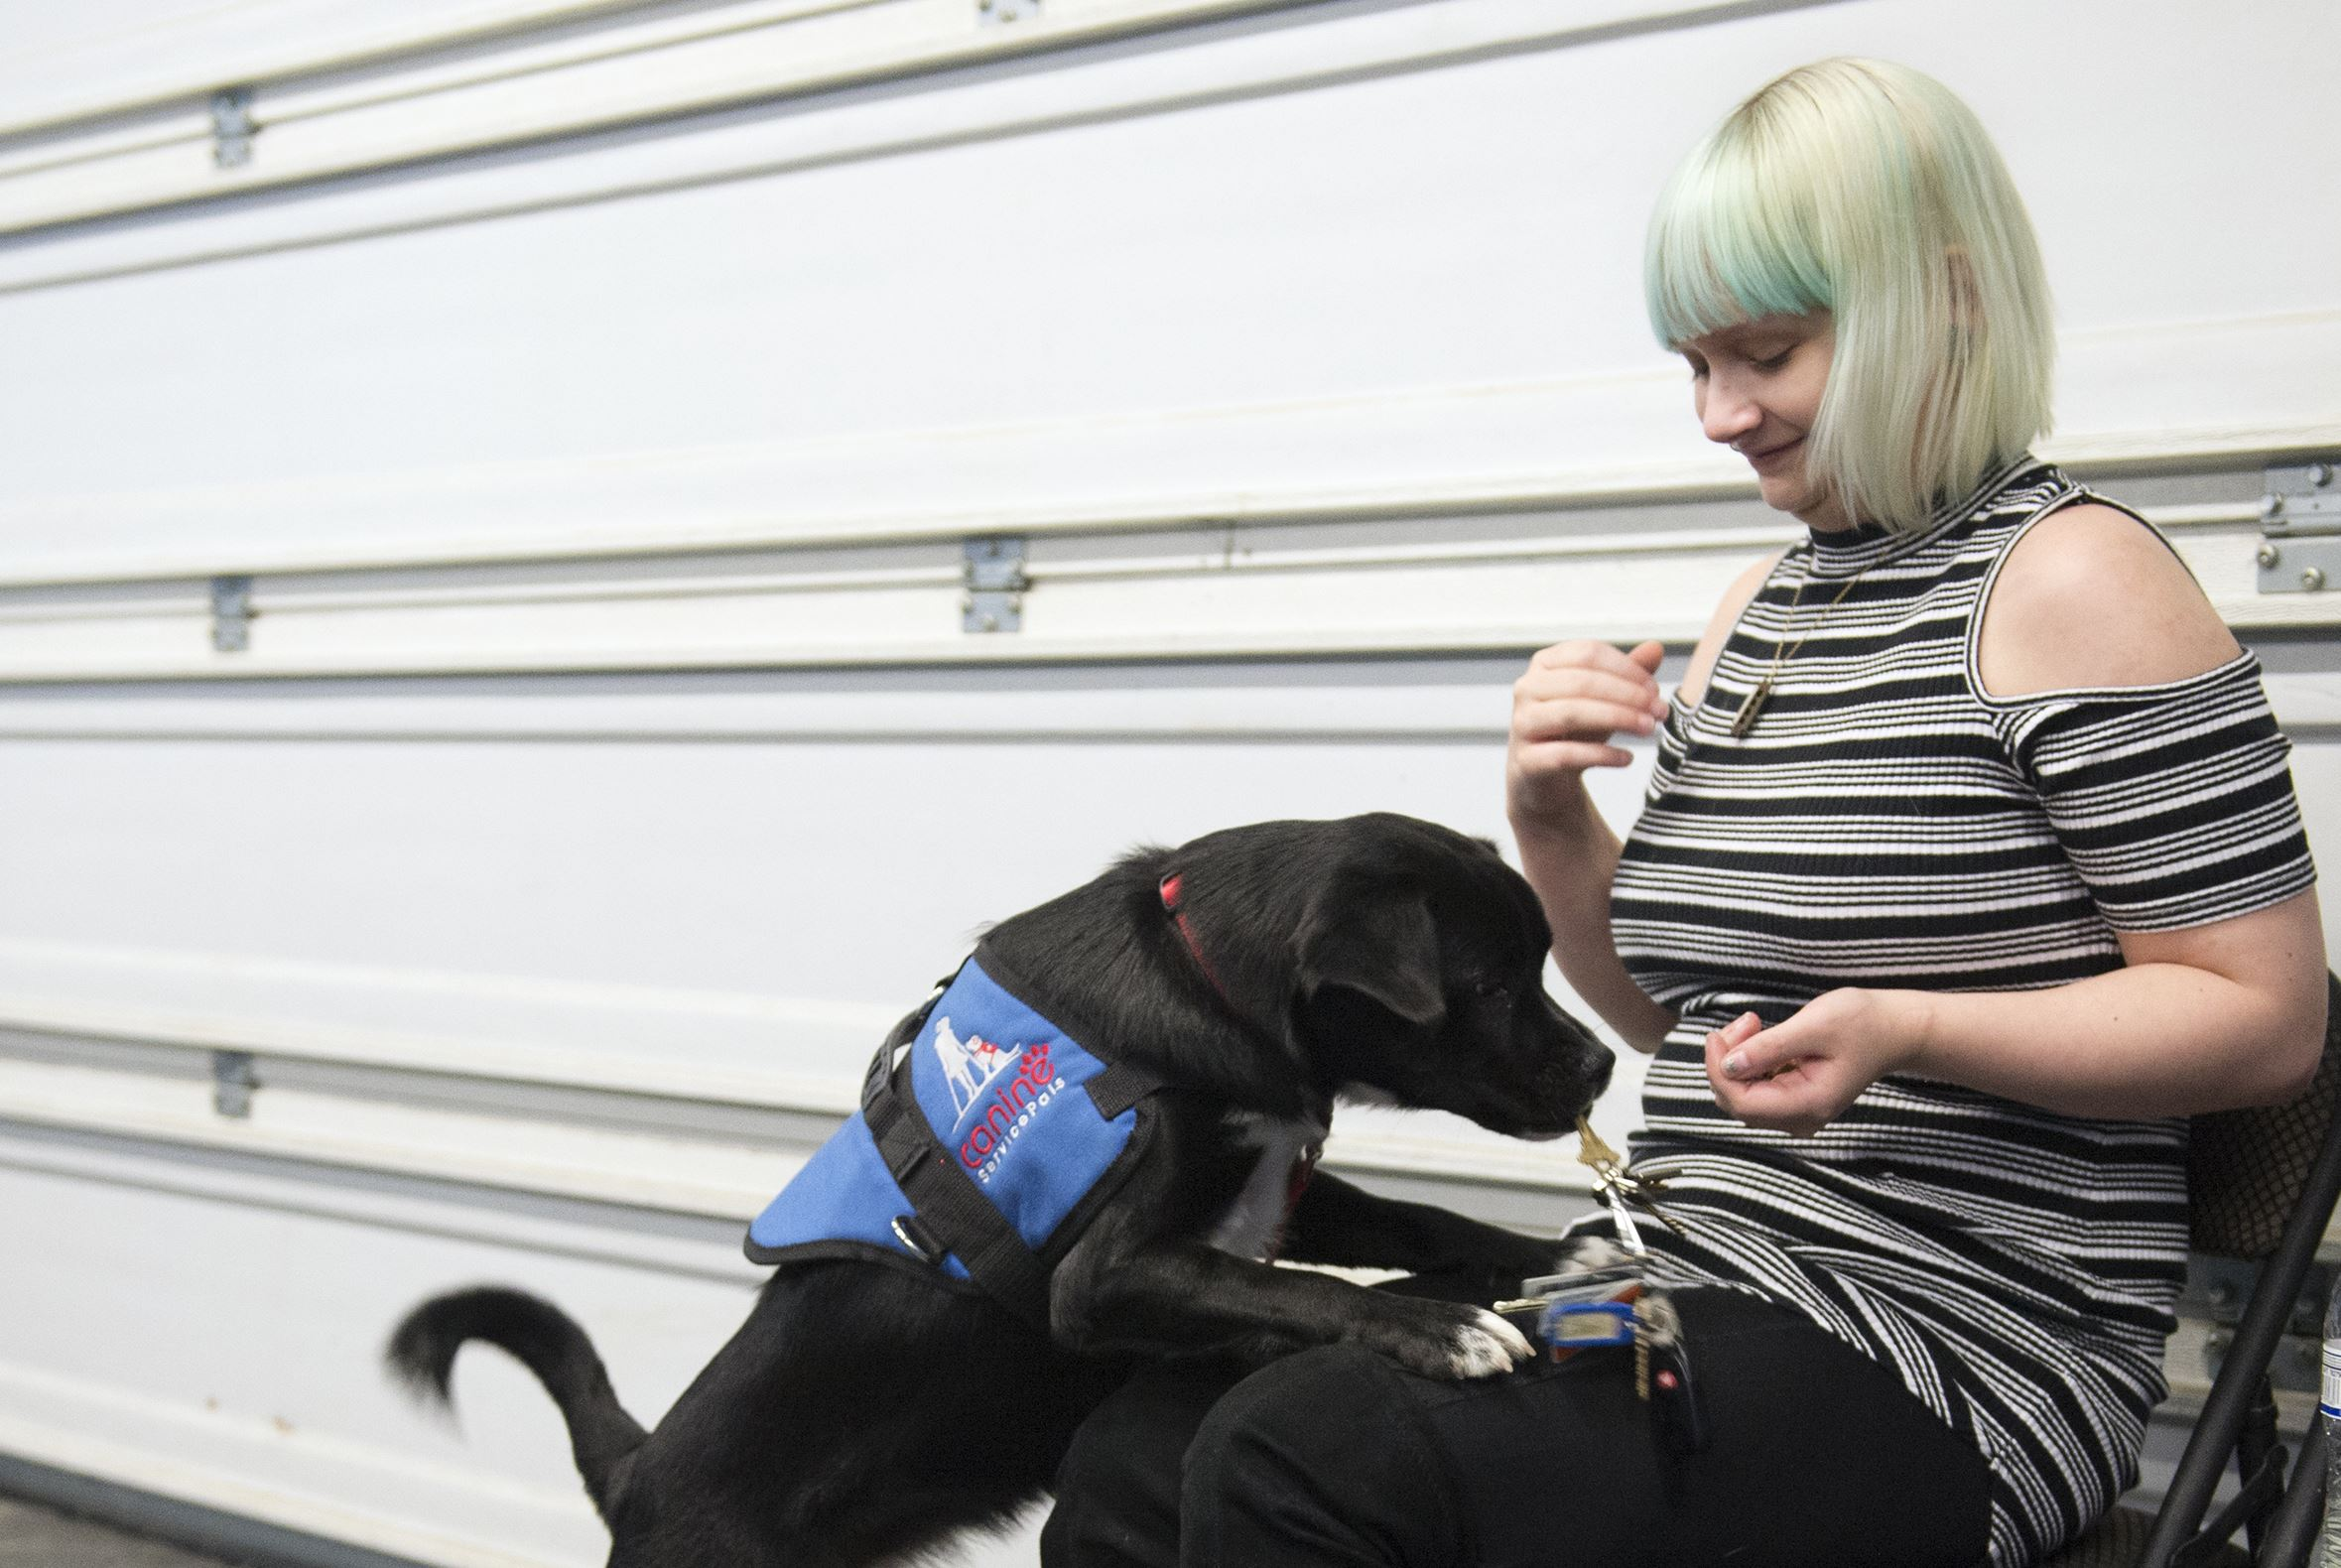 20171220hnRaisin-5-1 Sydney Campbell, 19, praises her new service dog, Raisin, for fetching a lanyard of keys at Parkway Pet Lodge in Moon. Raisin is the first graduate from Canine Service Pals, a nonprofit that rescues and trains shelter dogs to help children and adults with disabilities.